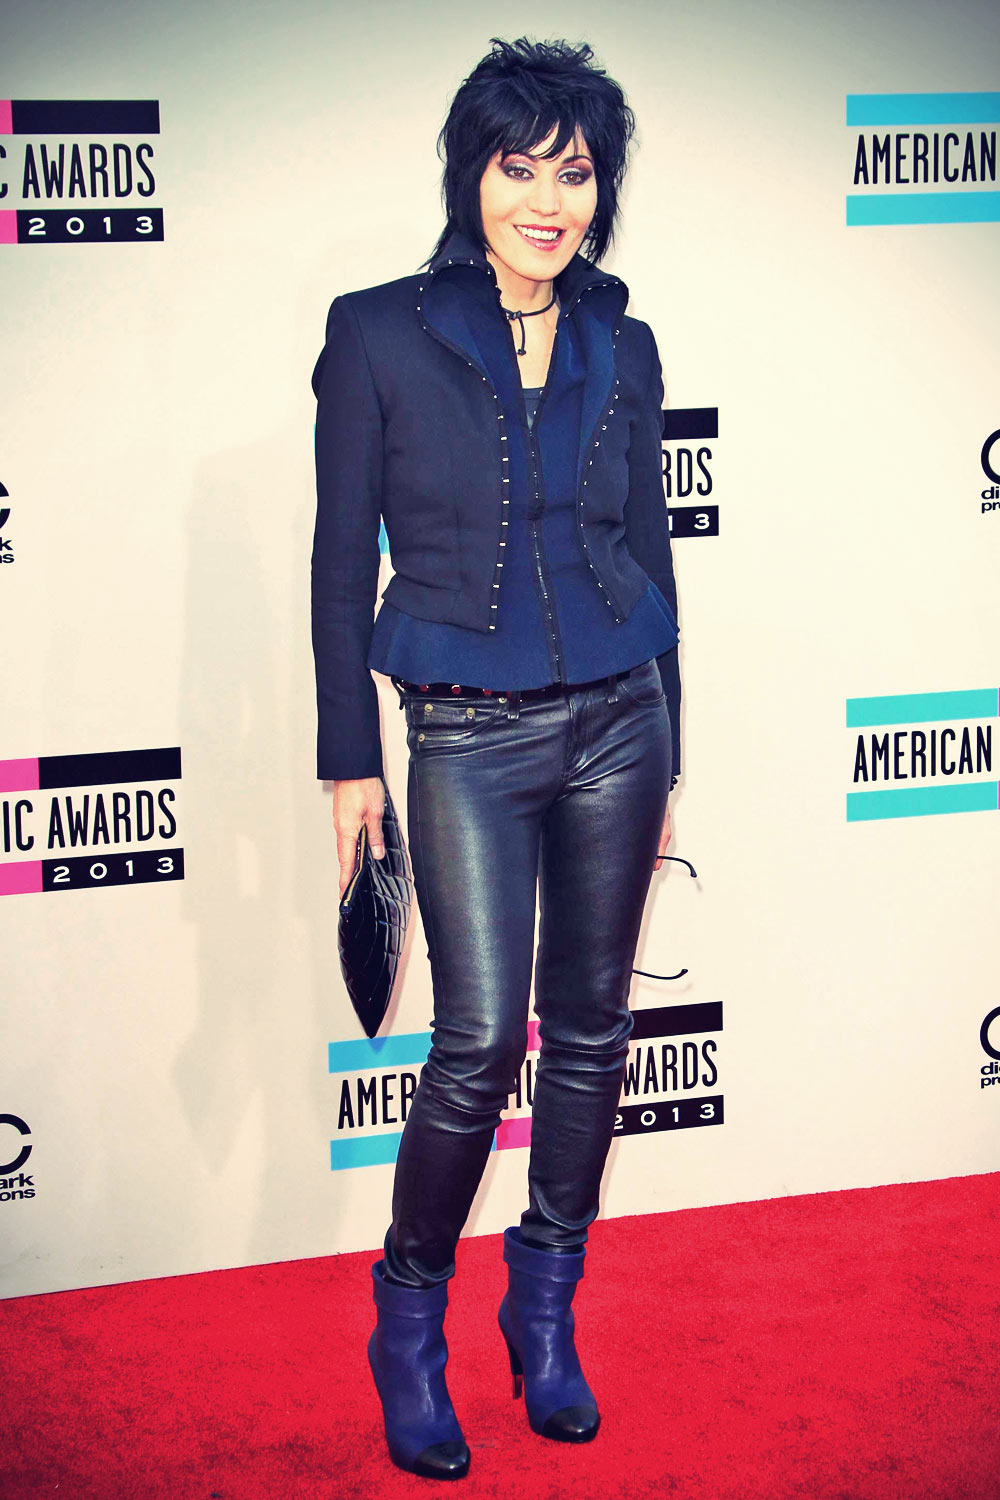 Joan Jett attends American Music Awards